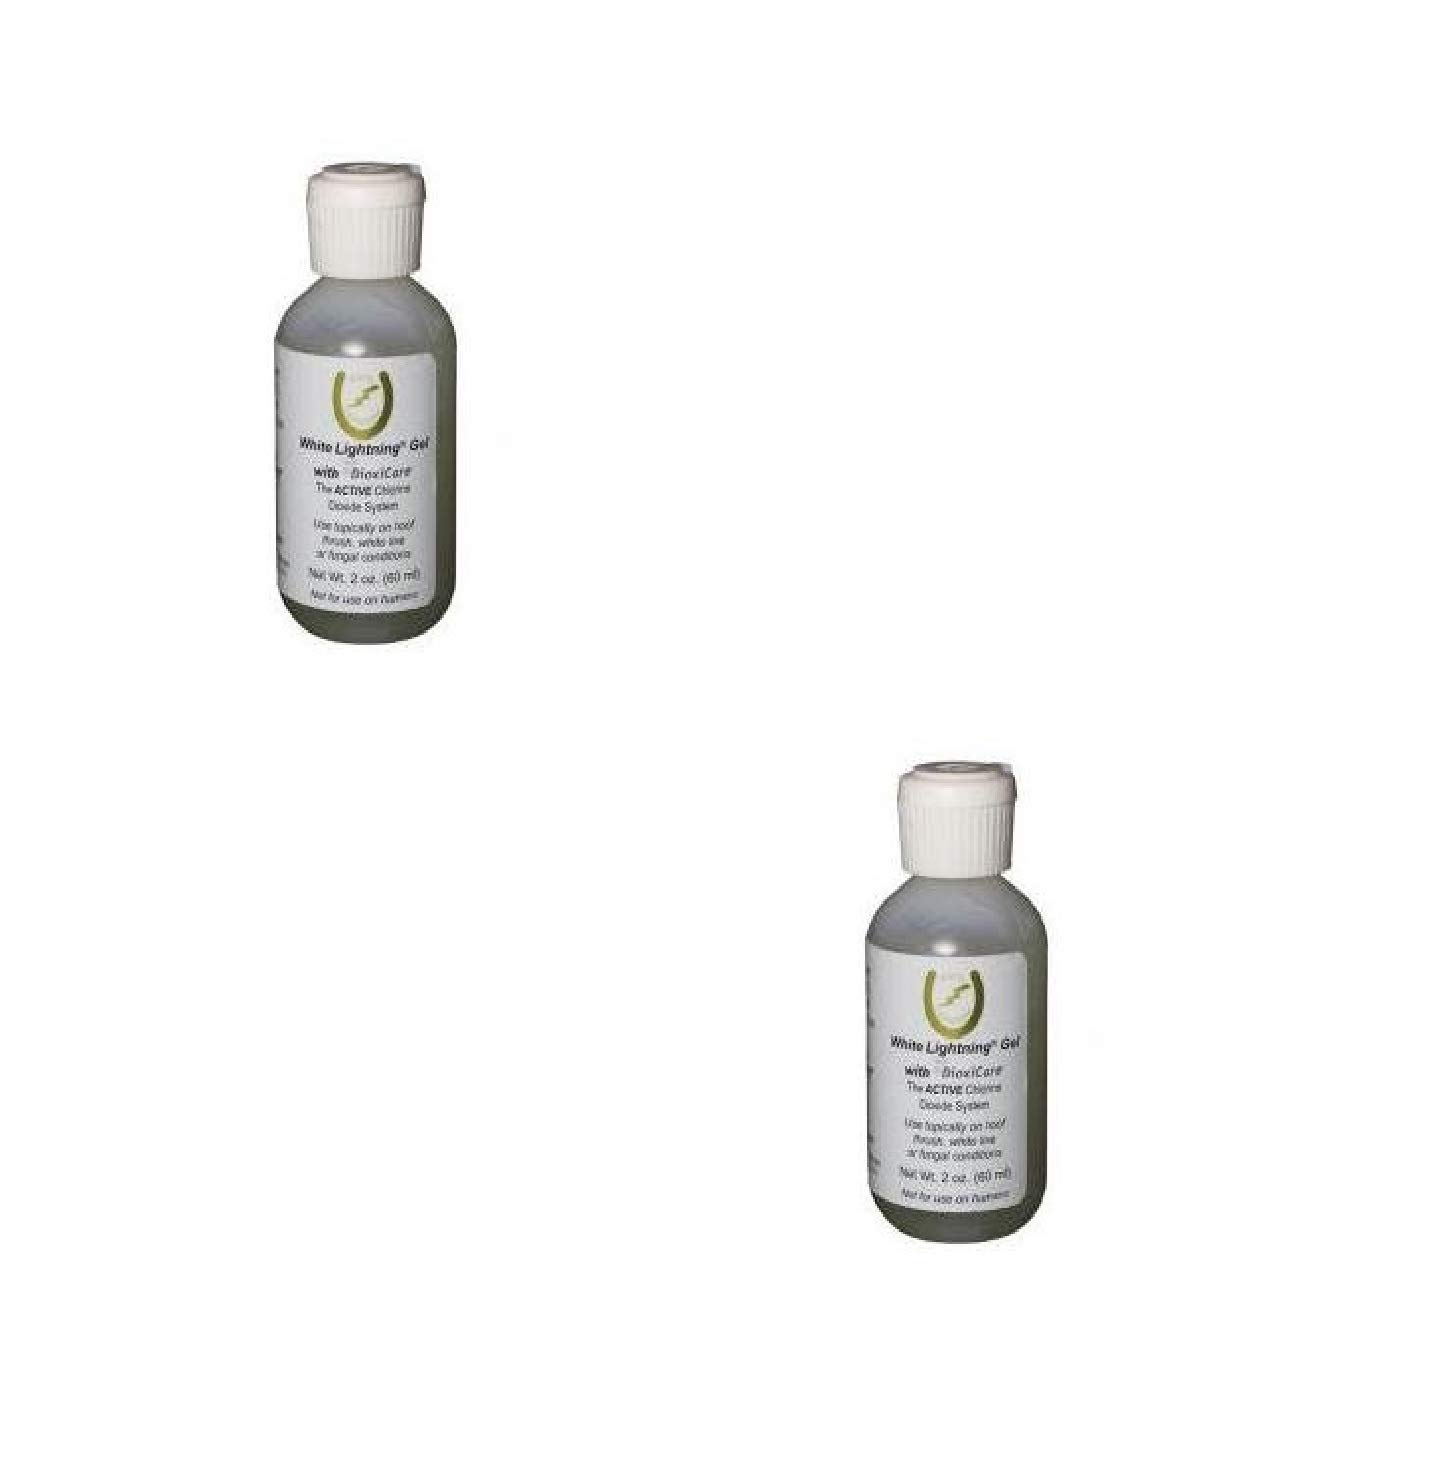 Grand Circuit 2 Oz White Lightning Gel with Dioxicare Use Topically on Hoof Thrush, White Line, or Fungal Conditions (2 Pck)